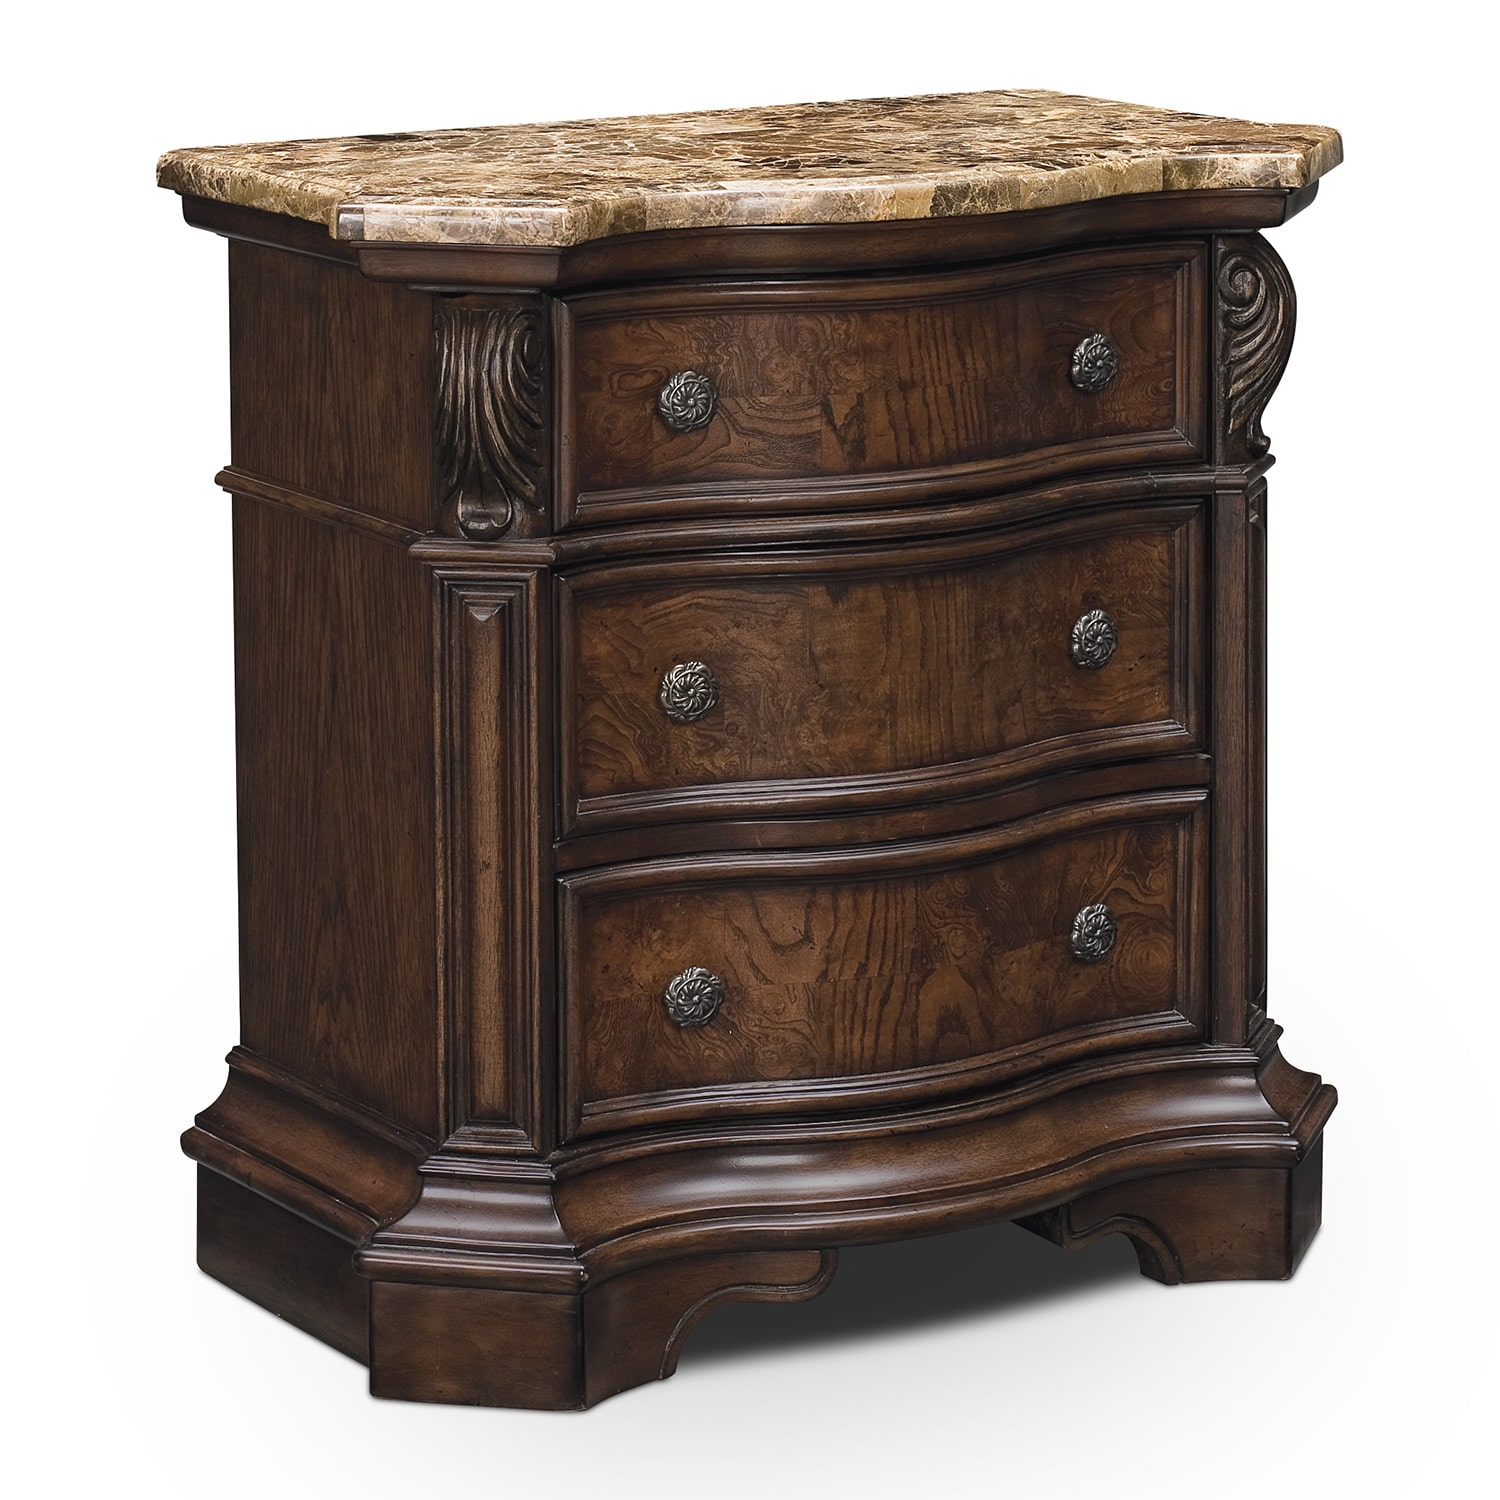 Bedroom Furniture - Monticello Nightstand